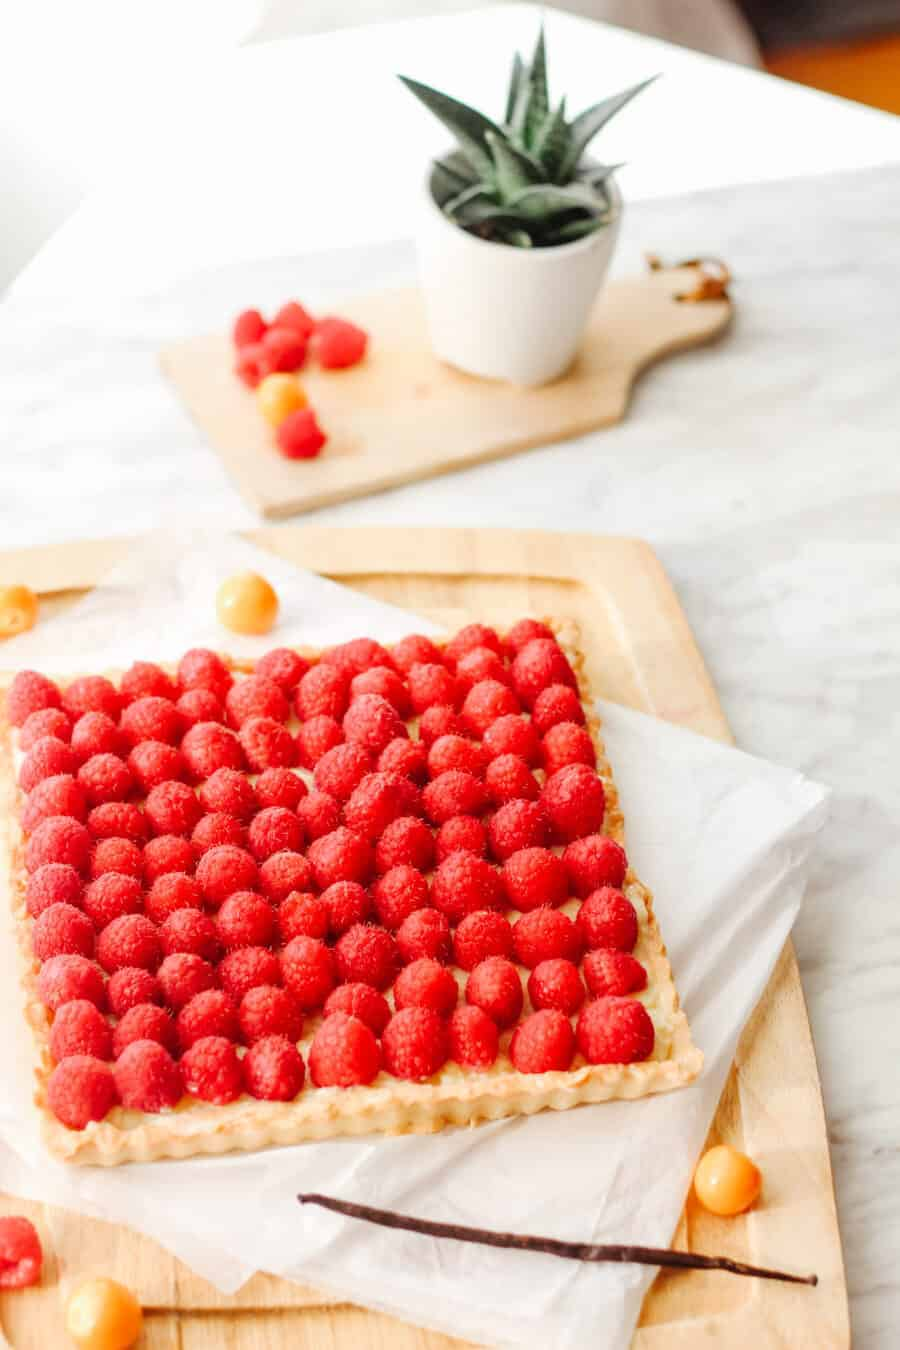 Side view of a raspberry tart with french vanilla pastry cream filling